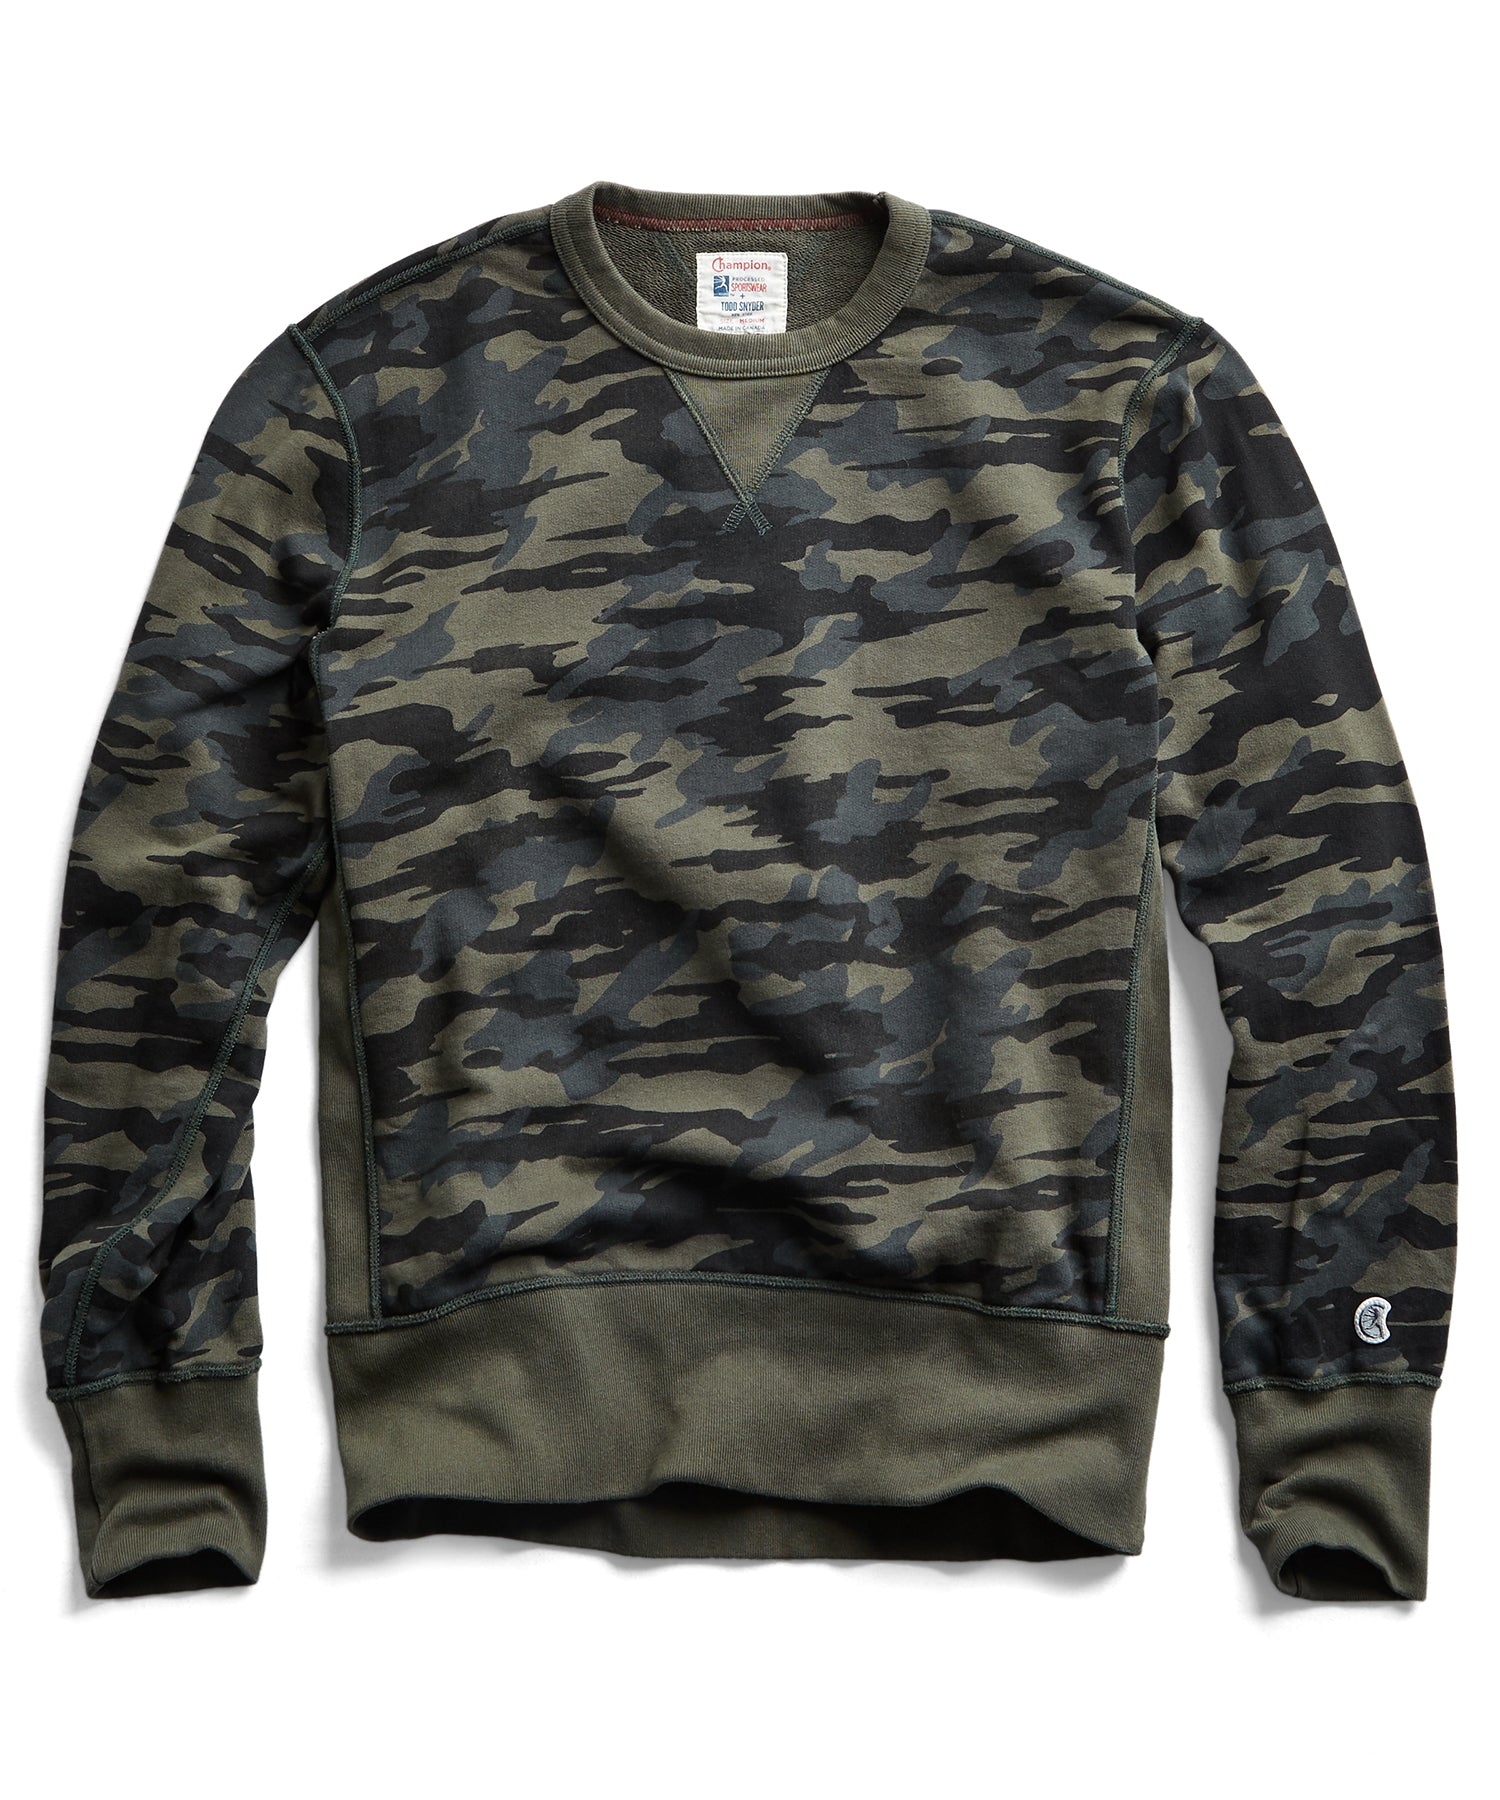 Camo Sweatshirt in Olive